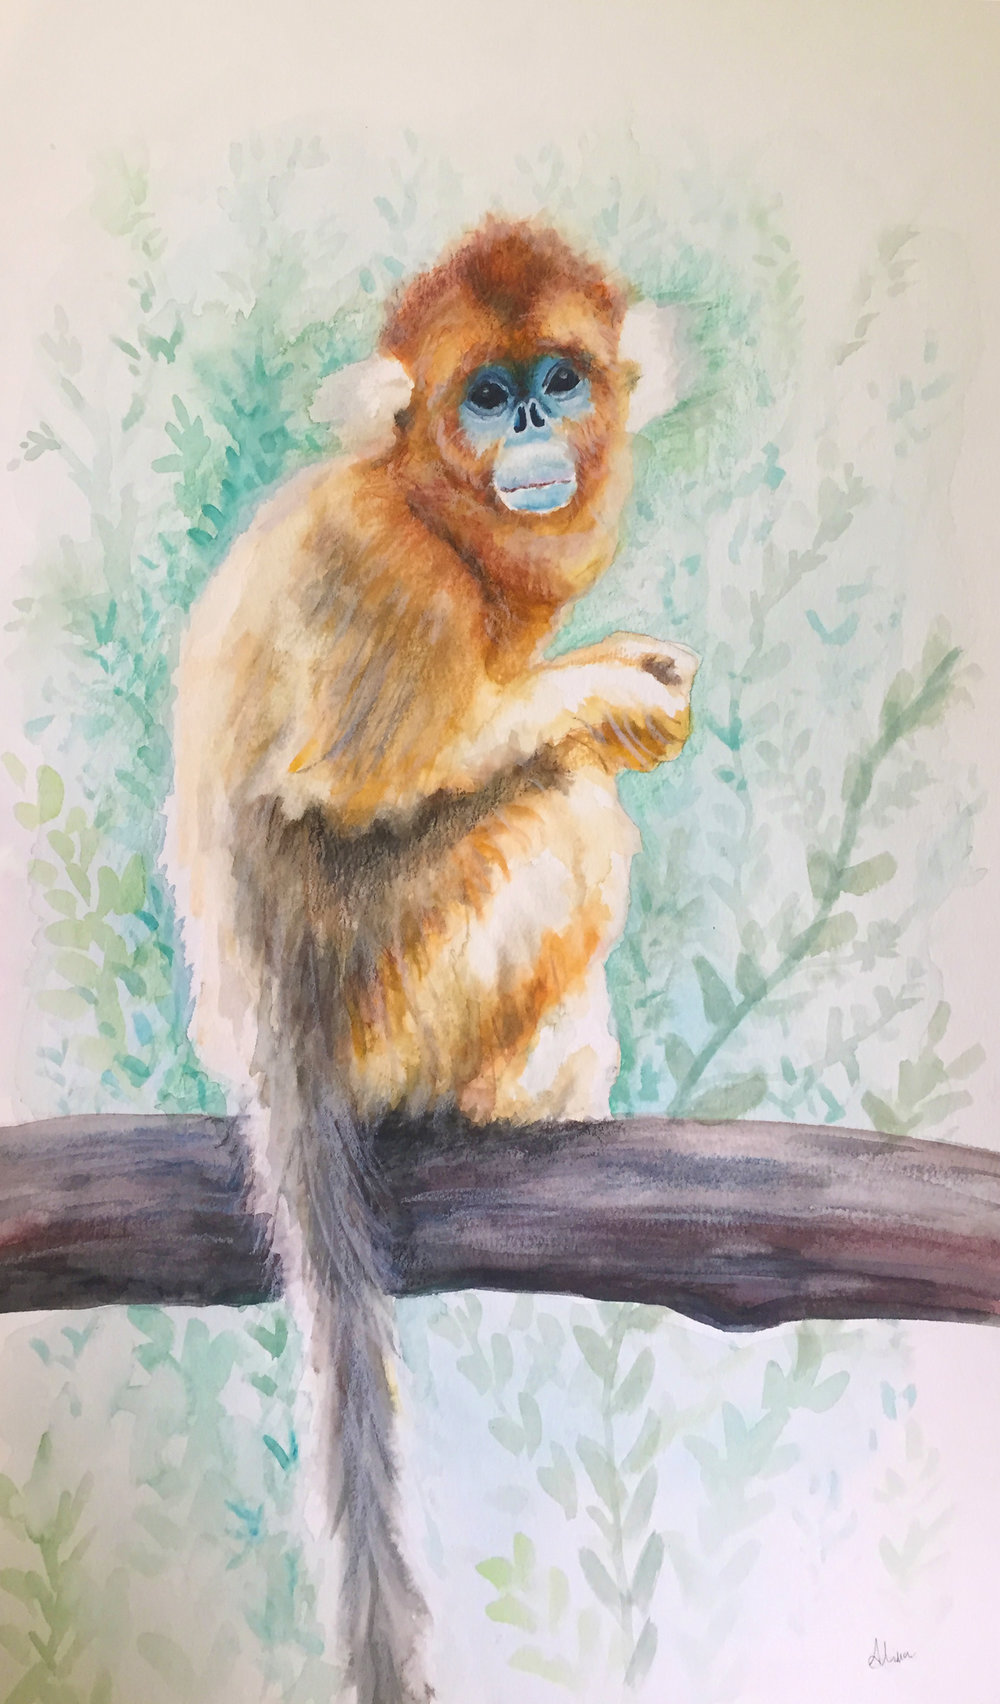 MONKEY (Golden Snub-nosed Monkey)